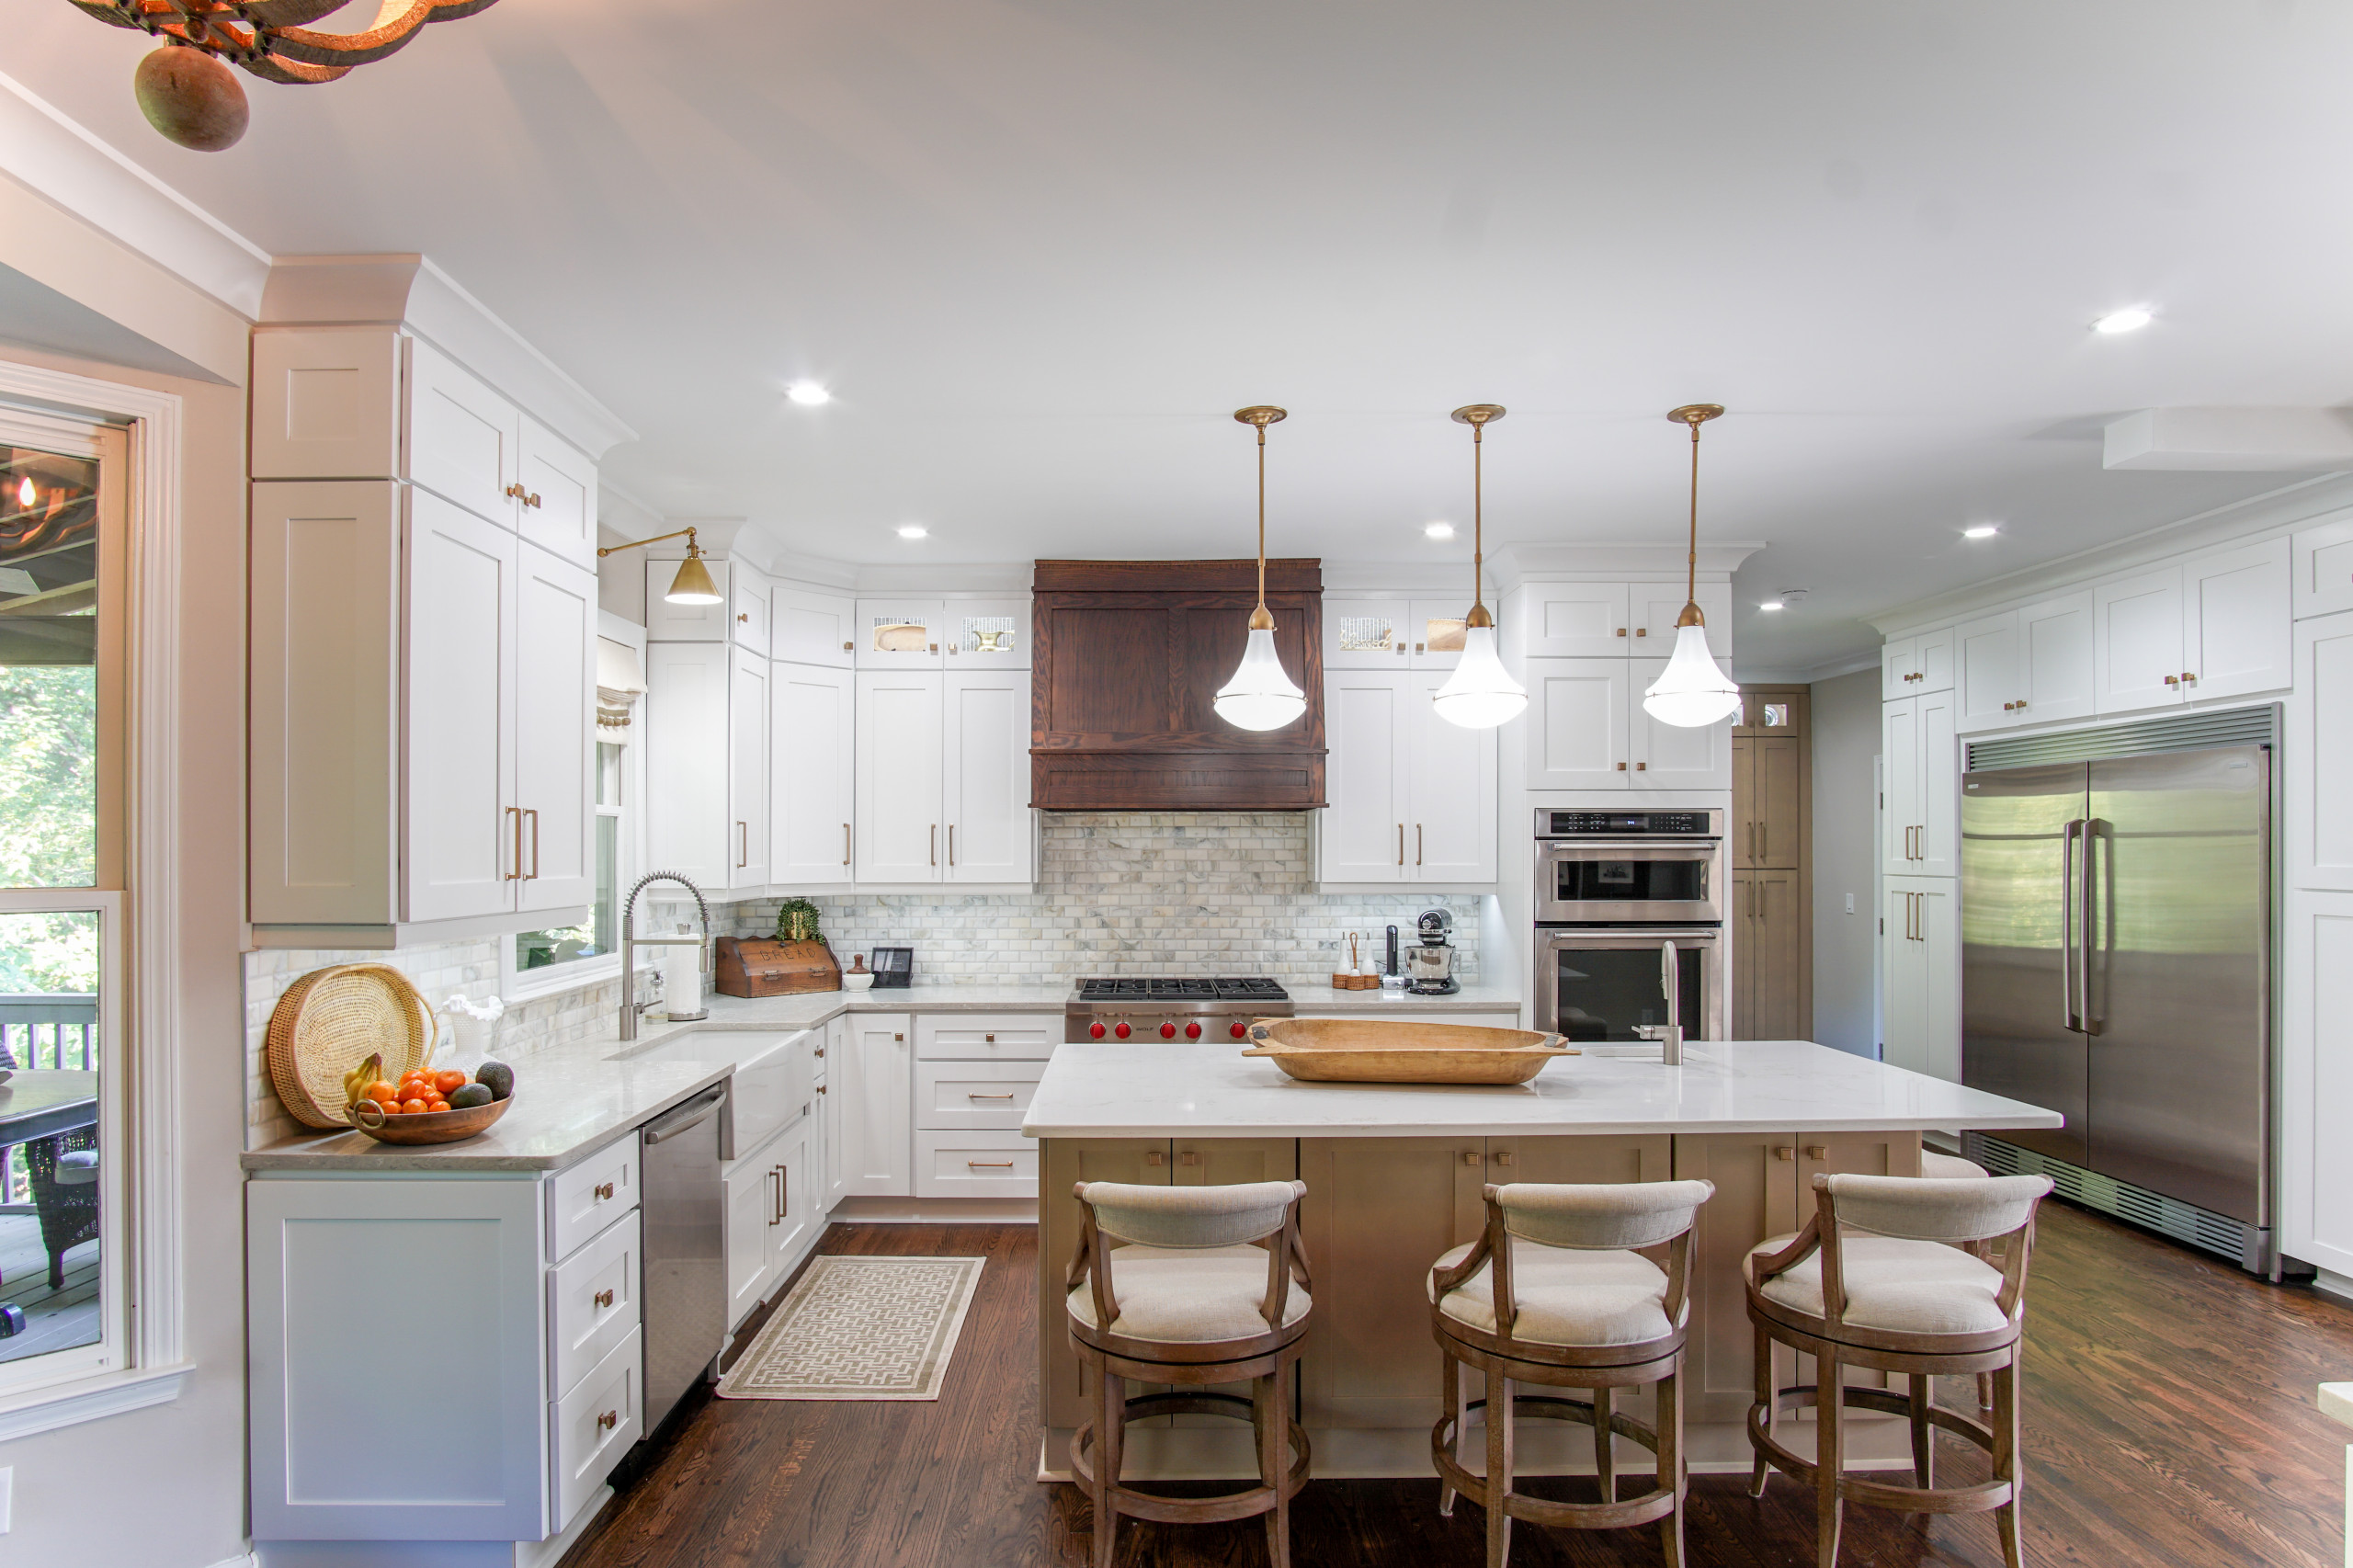 75 Beautiful Transitional Kitchen Pictures Ideas May 2021 Houzz